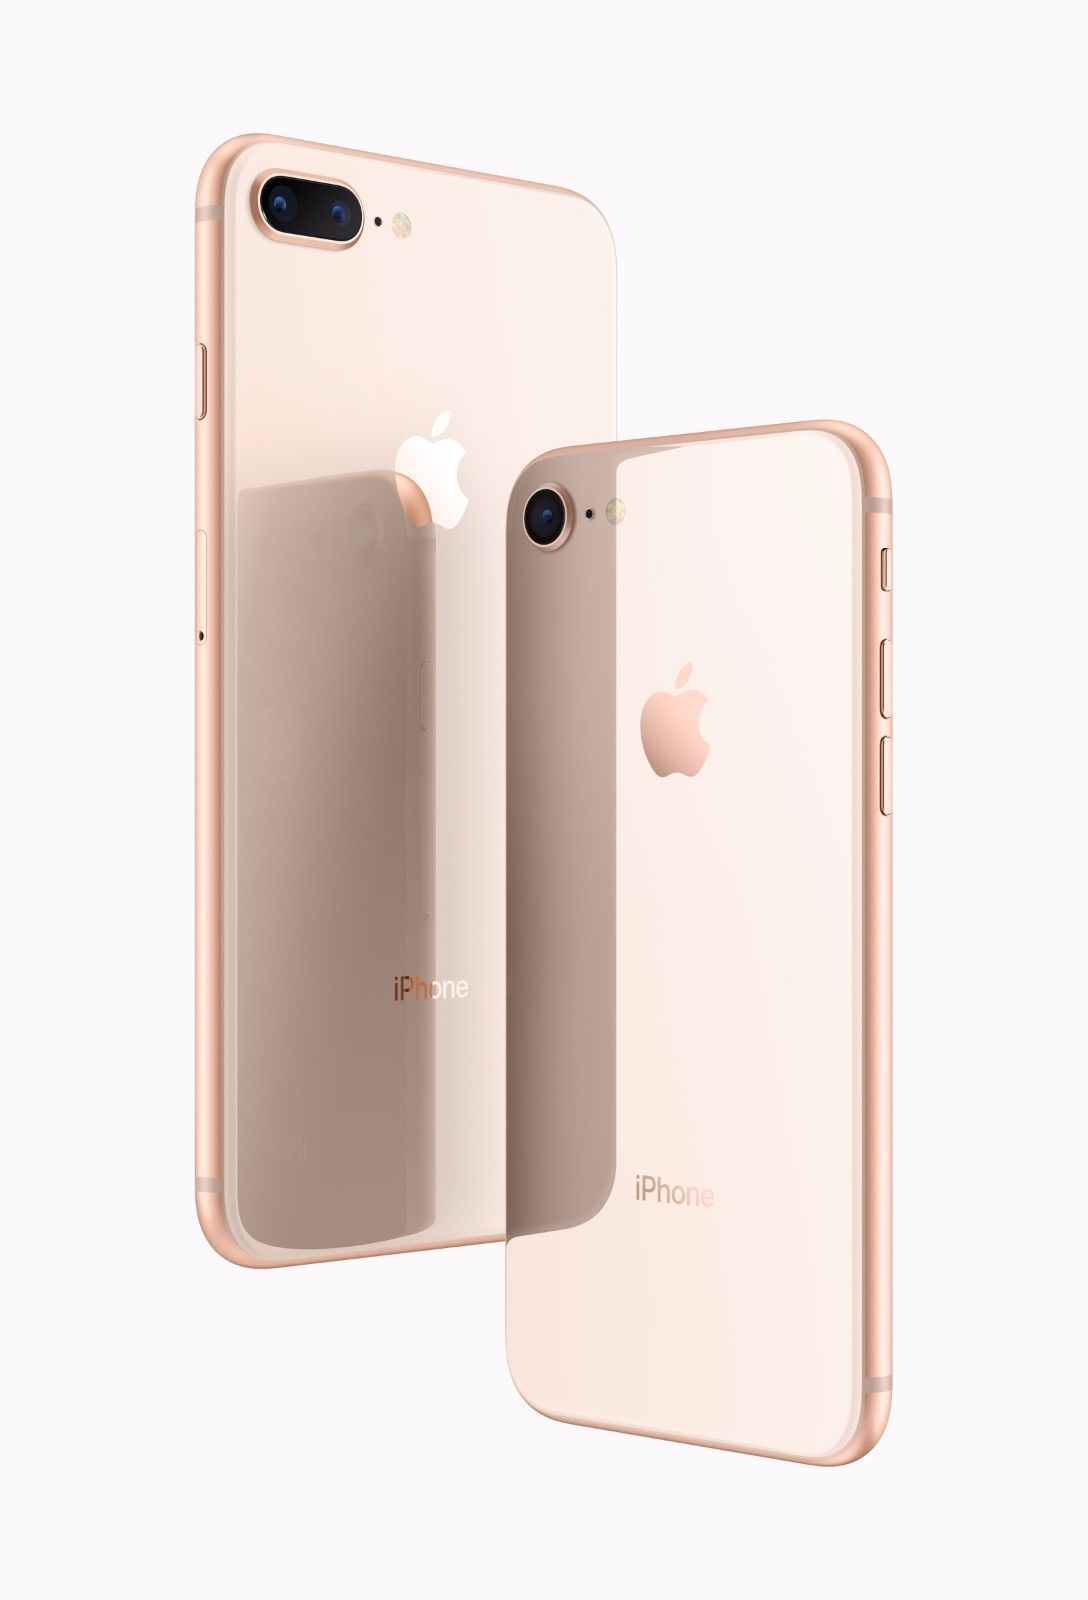 Apple Iphone 8 Plus 256gb Gold At T Smartphone New Iphone New Iphone 8 Iphone 8 Plus